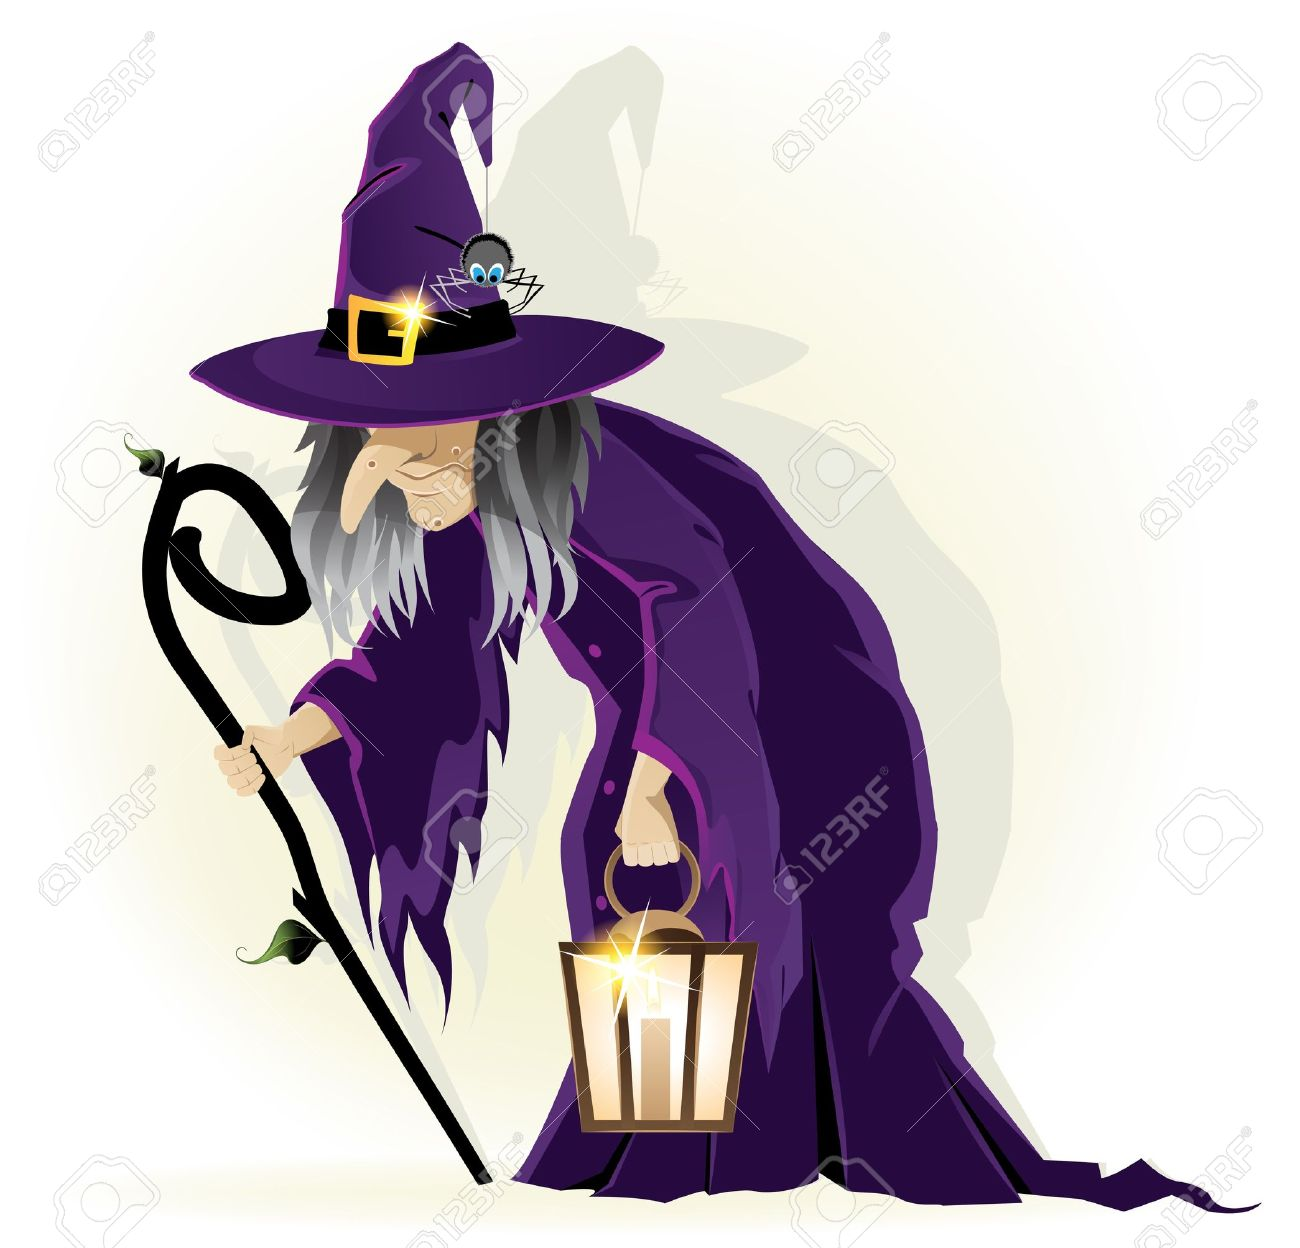 876 Bad Witch Cliparts, Stock Vector And Royalty Free Bad Witch ...